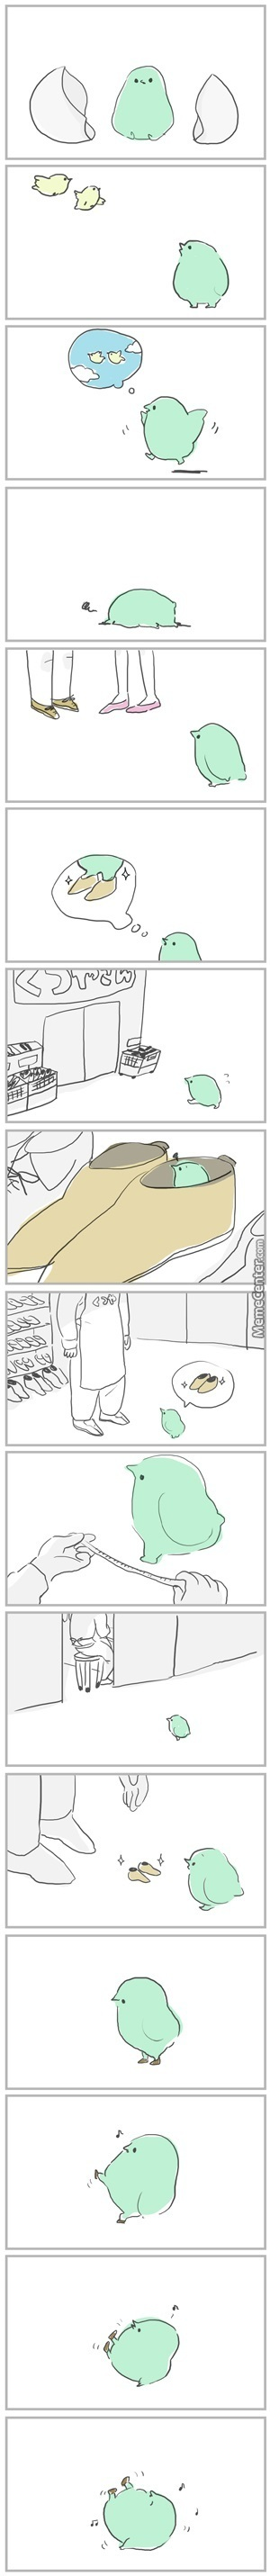 Small Bird Buys Small Shoes